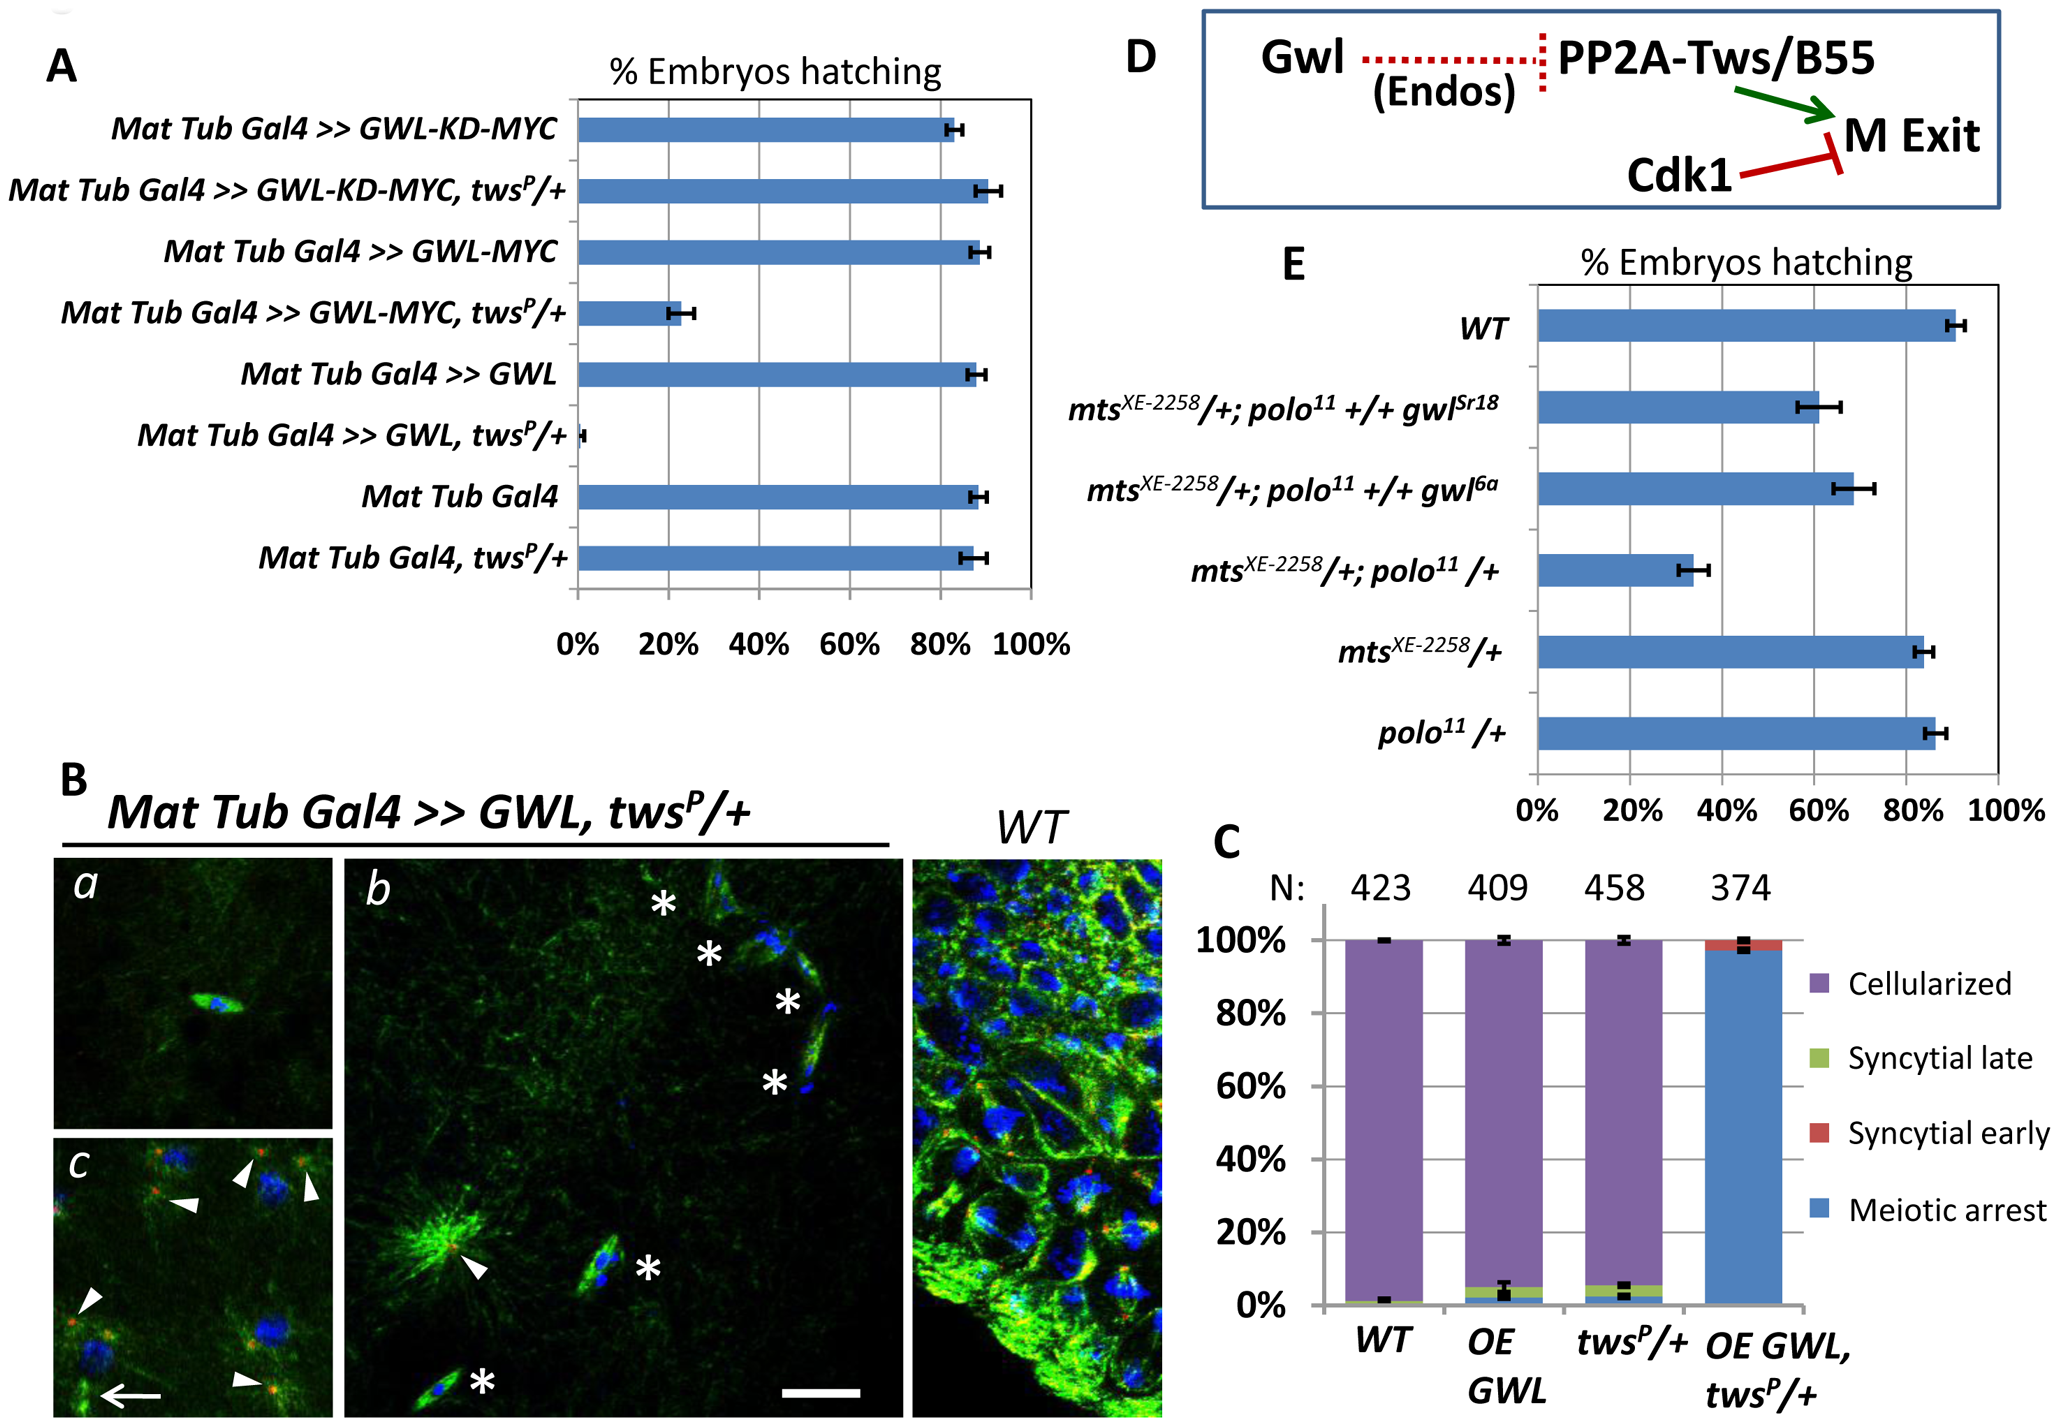 Greatwall antagonizes PP2A-Tws in meiosis and mitosis.